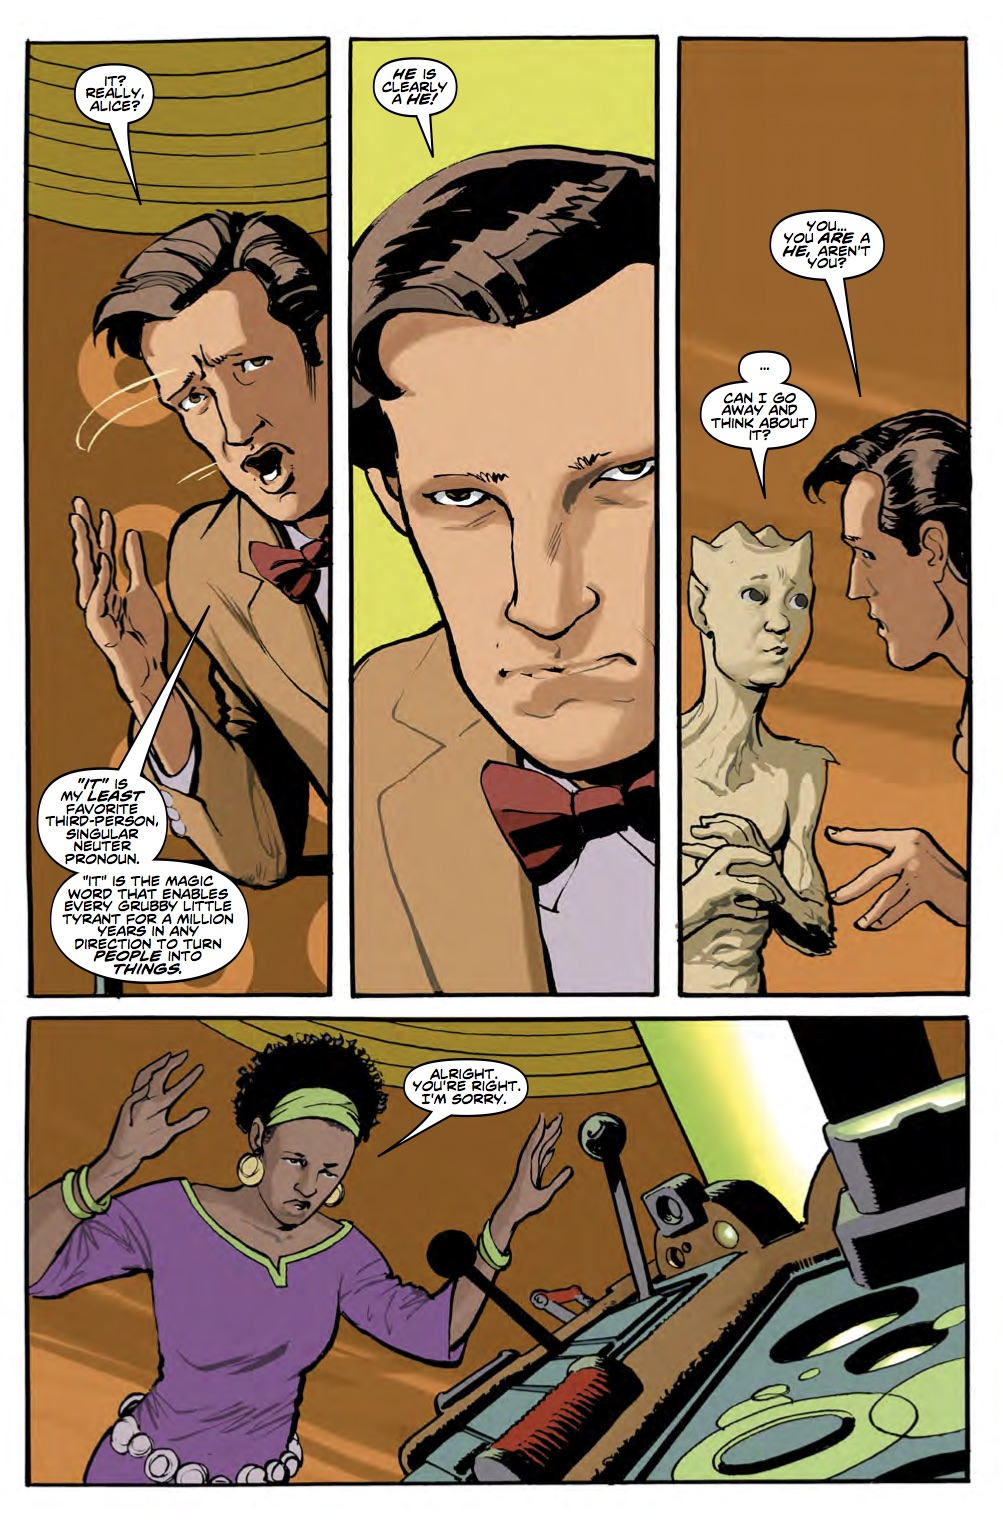 TITAN COMICS - DOCTOR WHO: ELEVENTH DOCTOR #3.3 - PREVIEW 2